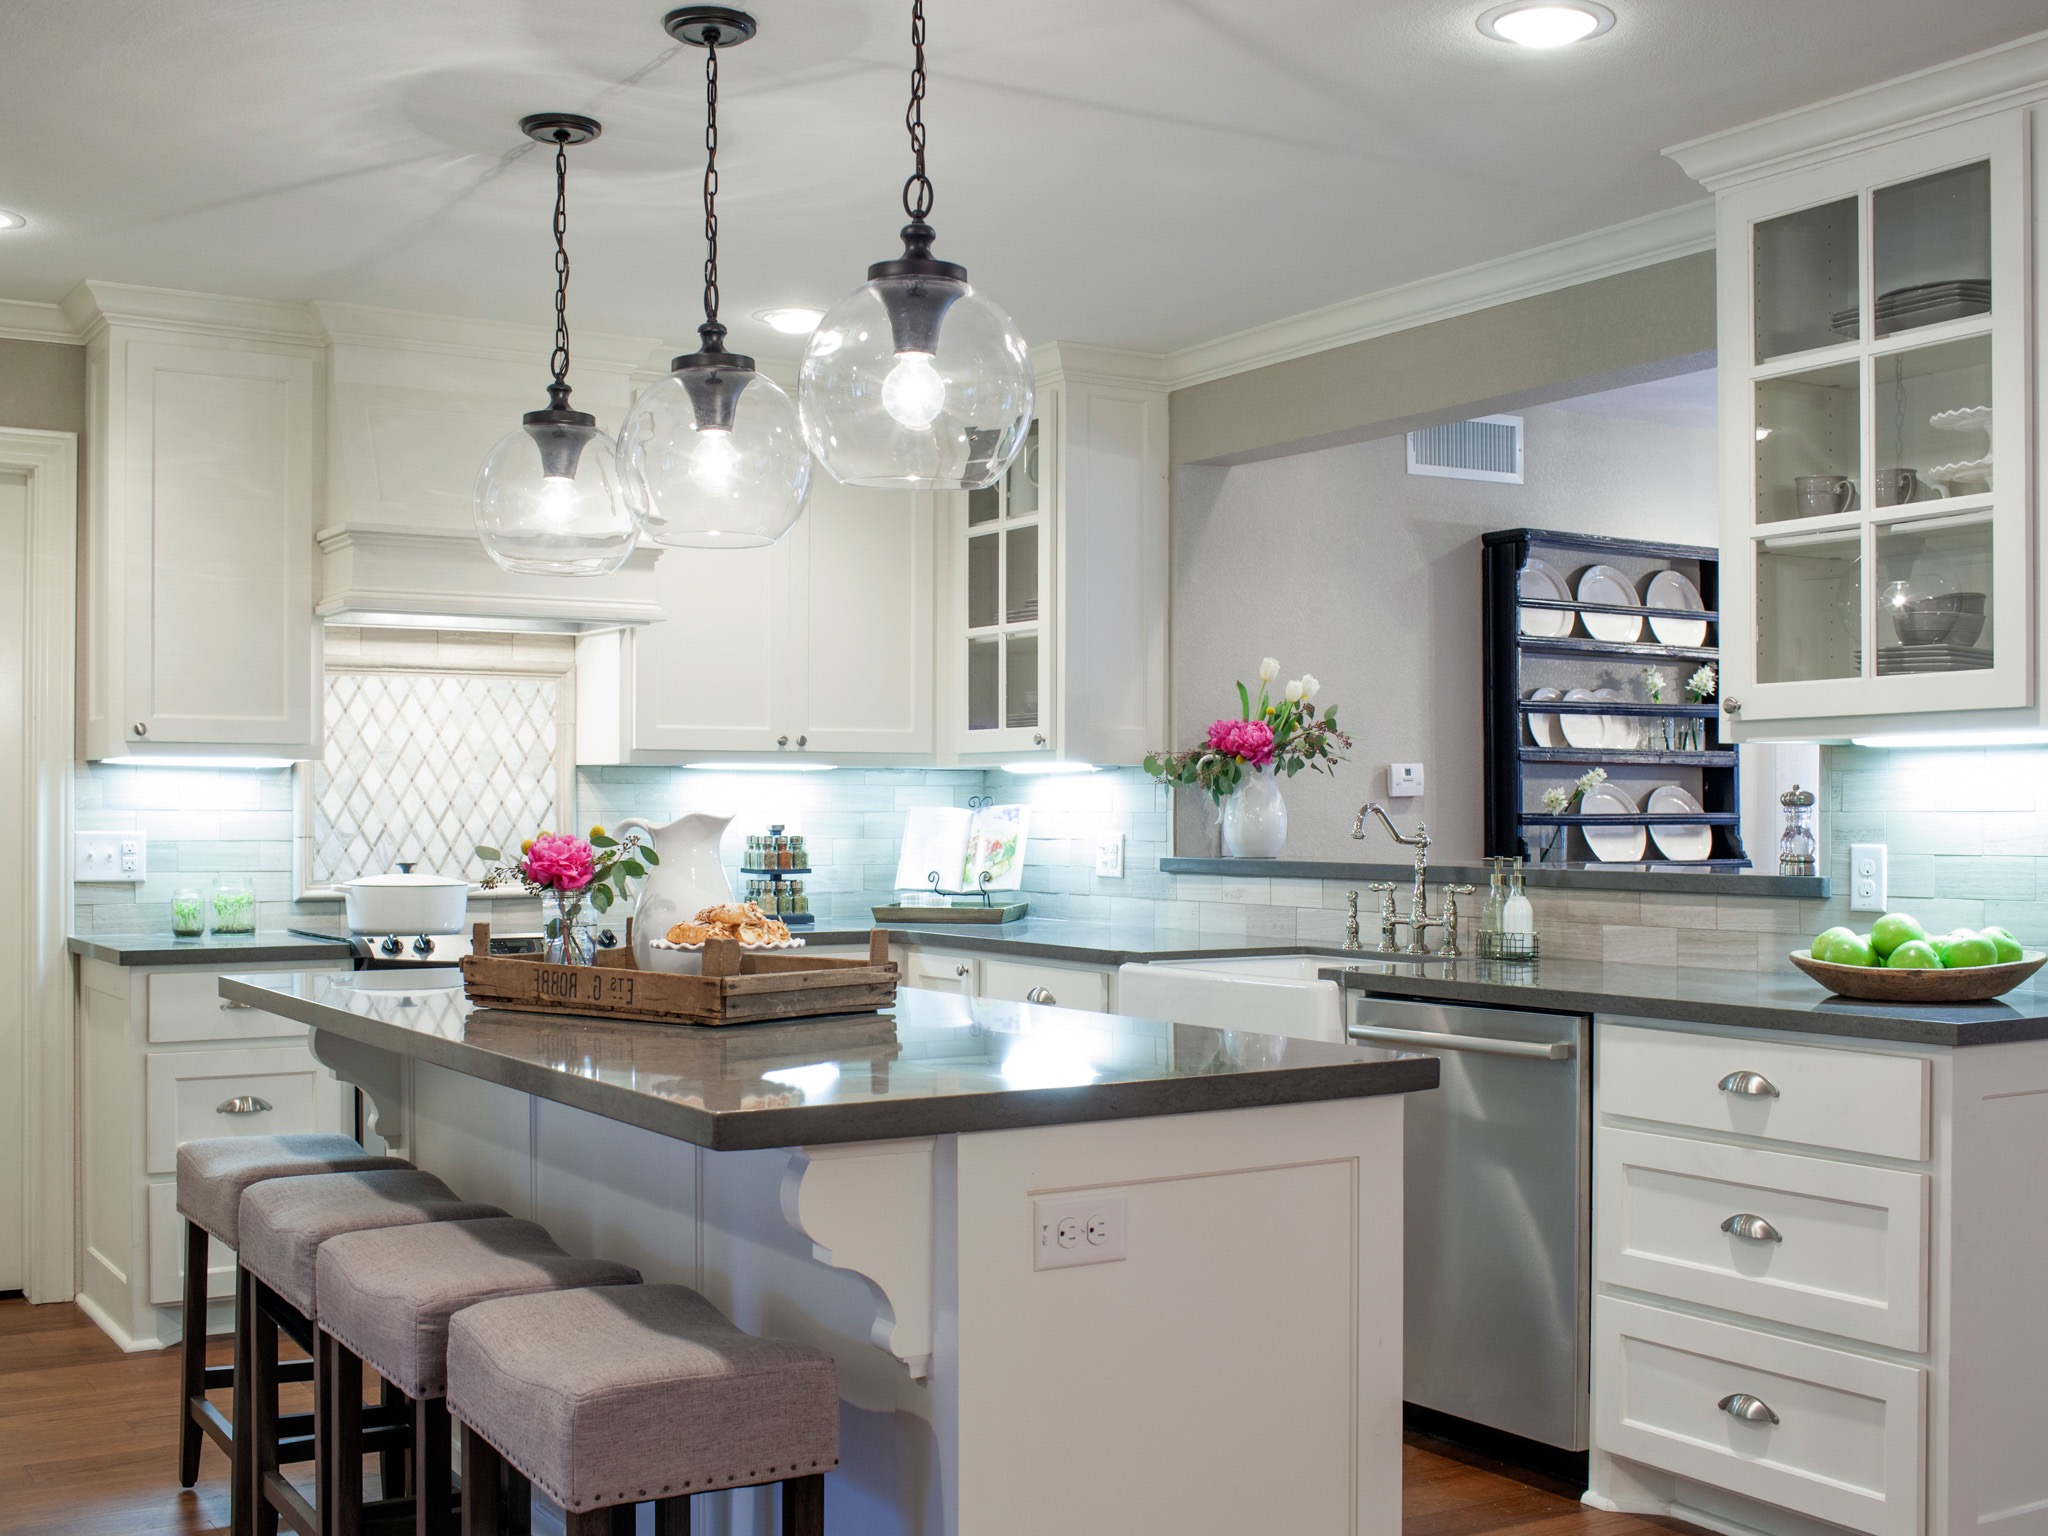 Modern Kitchen With Recessed Lighting (View 31 of 39)